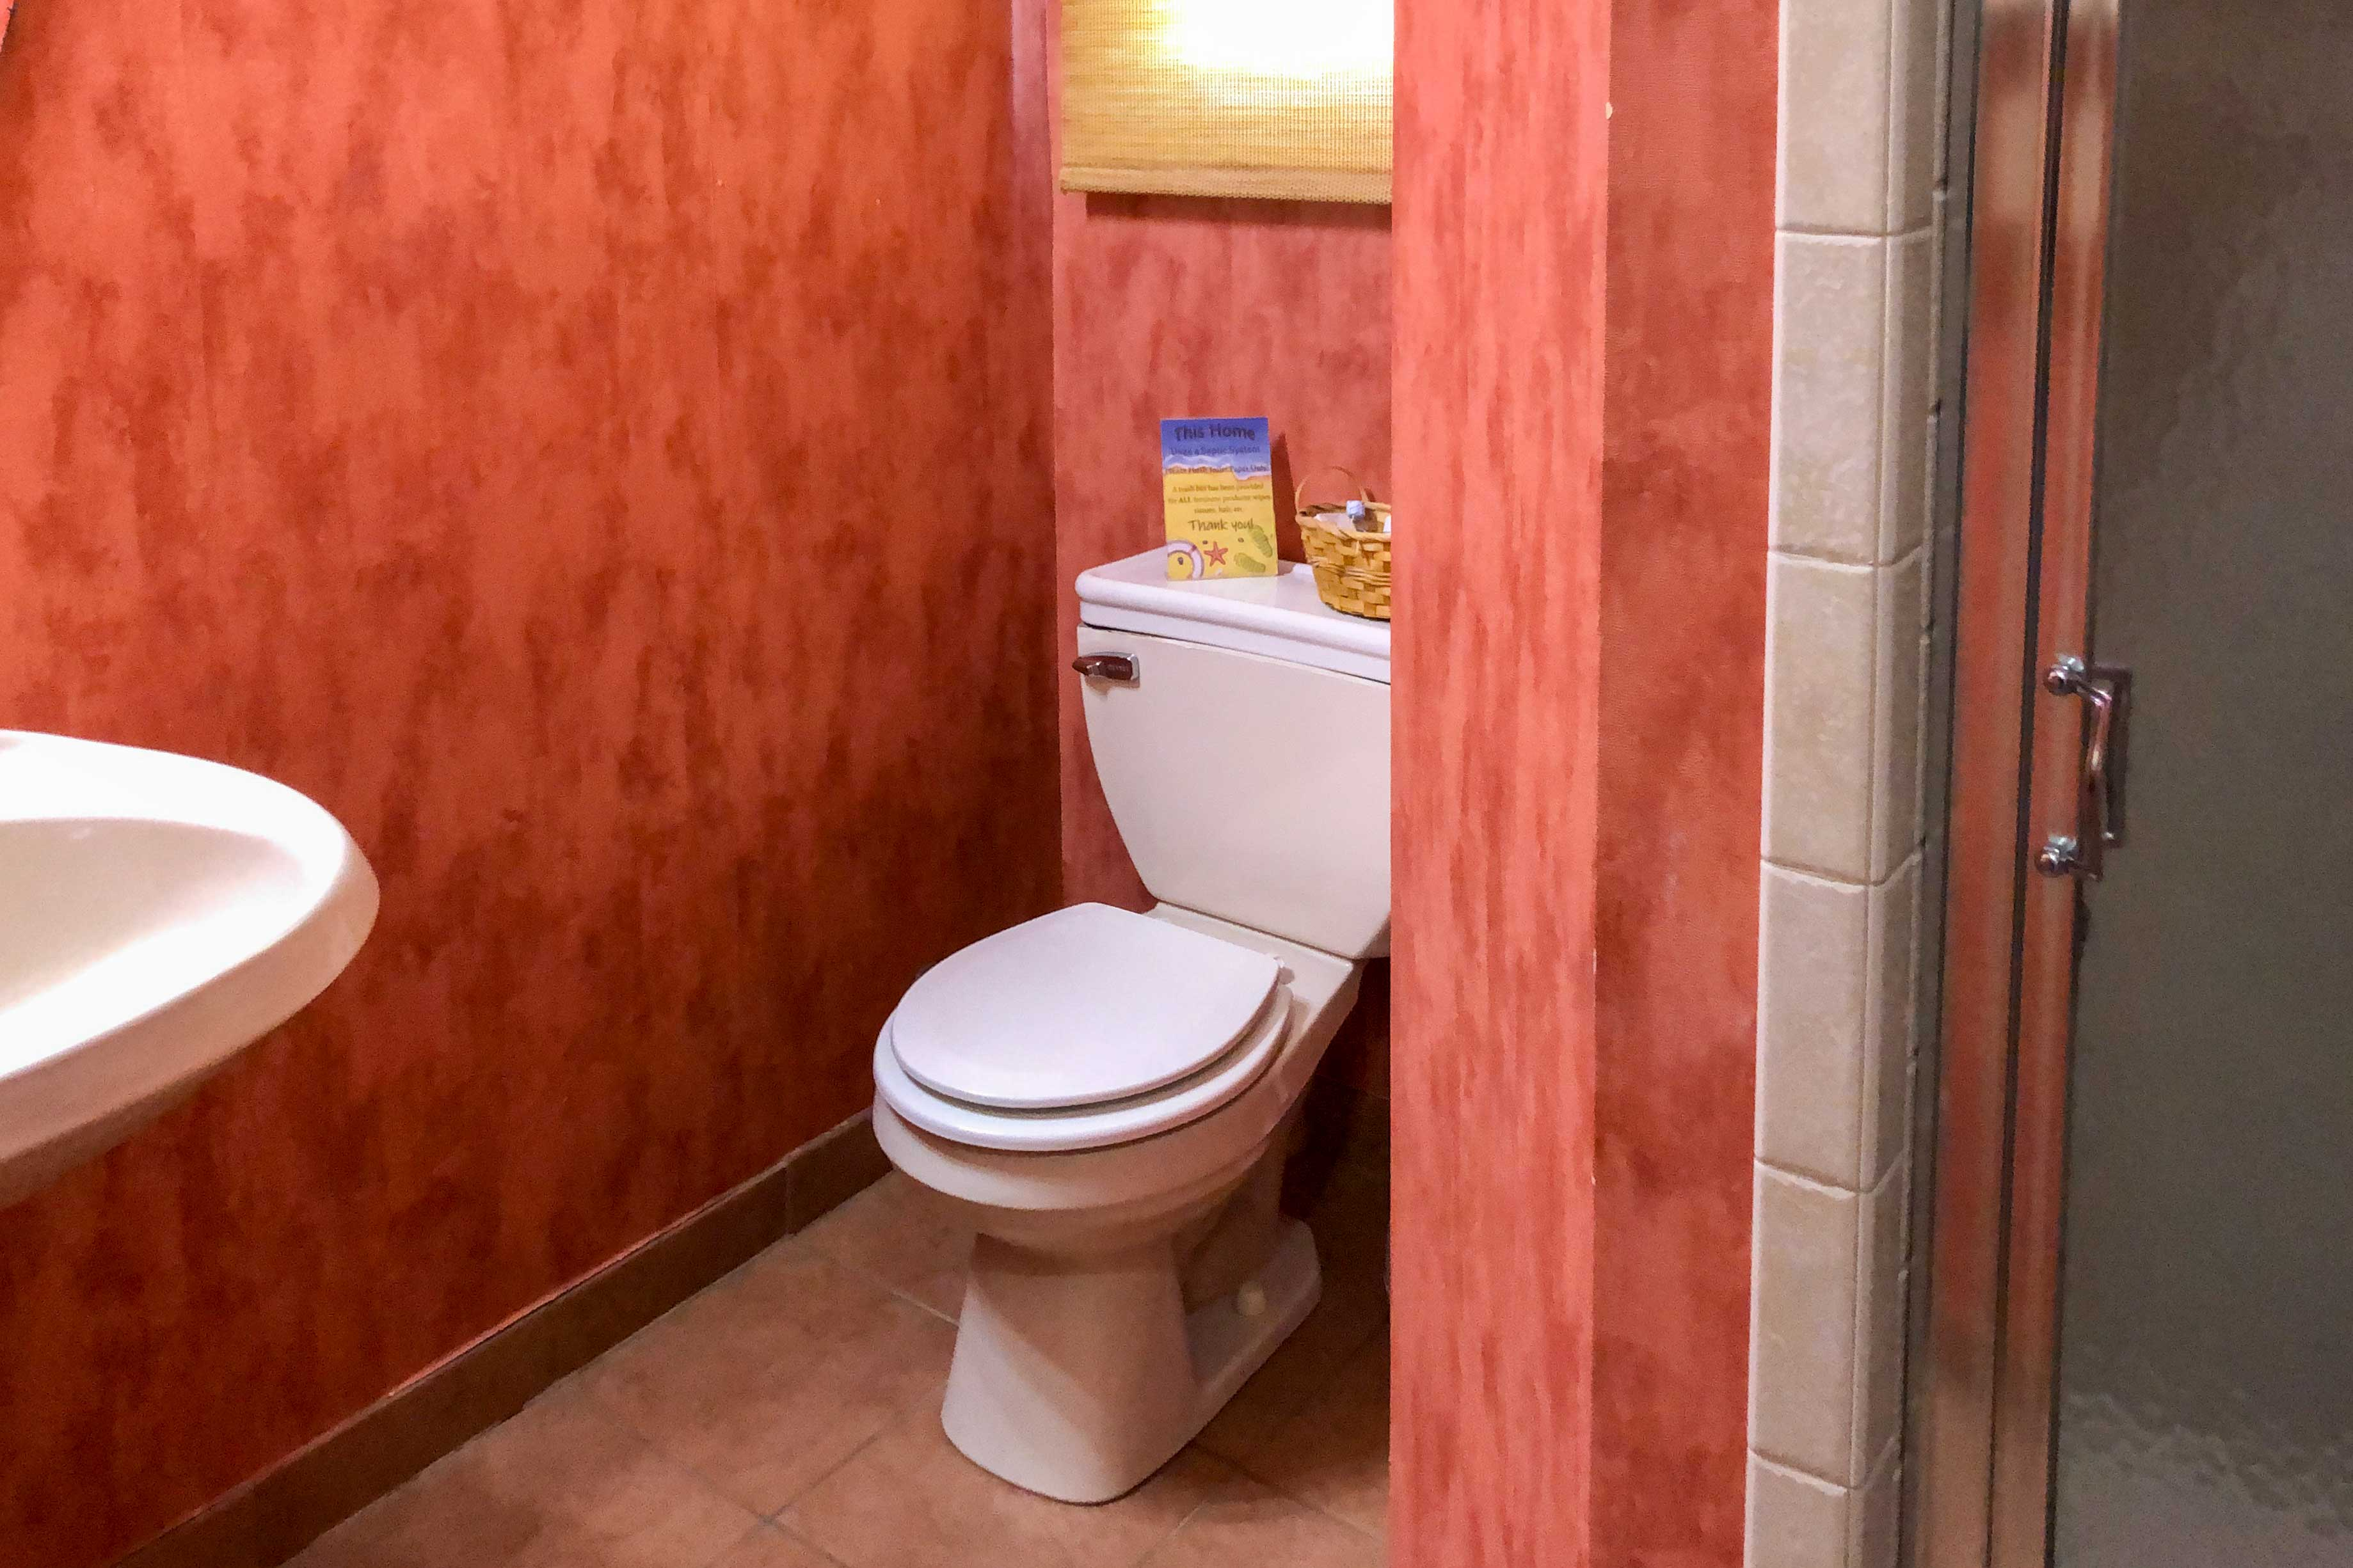 There are 6.5 bathrooms in the home.